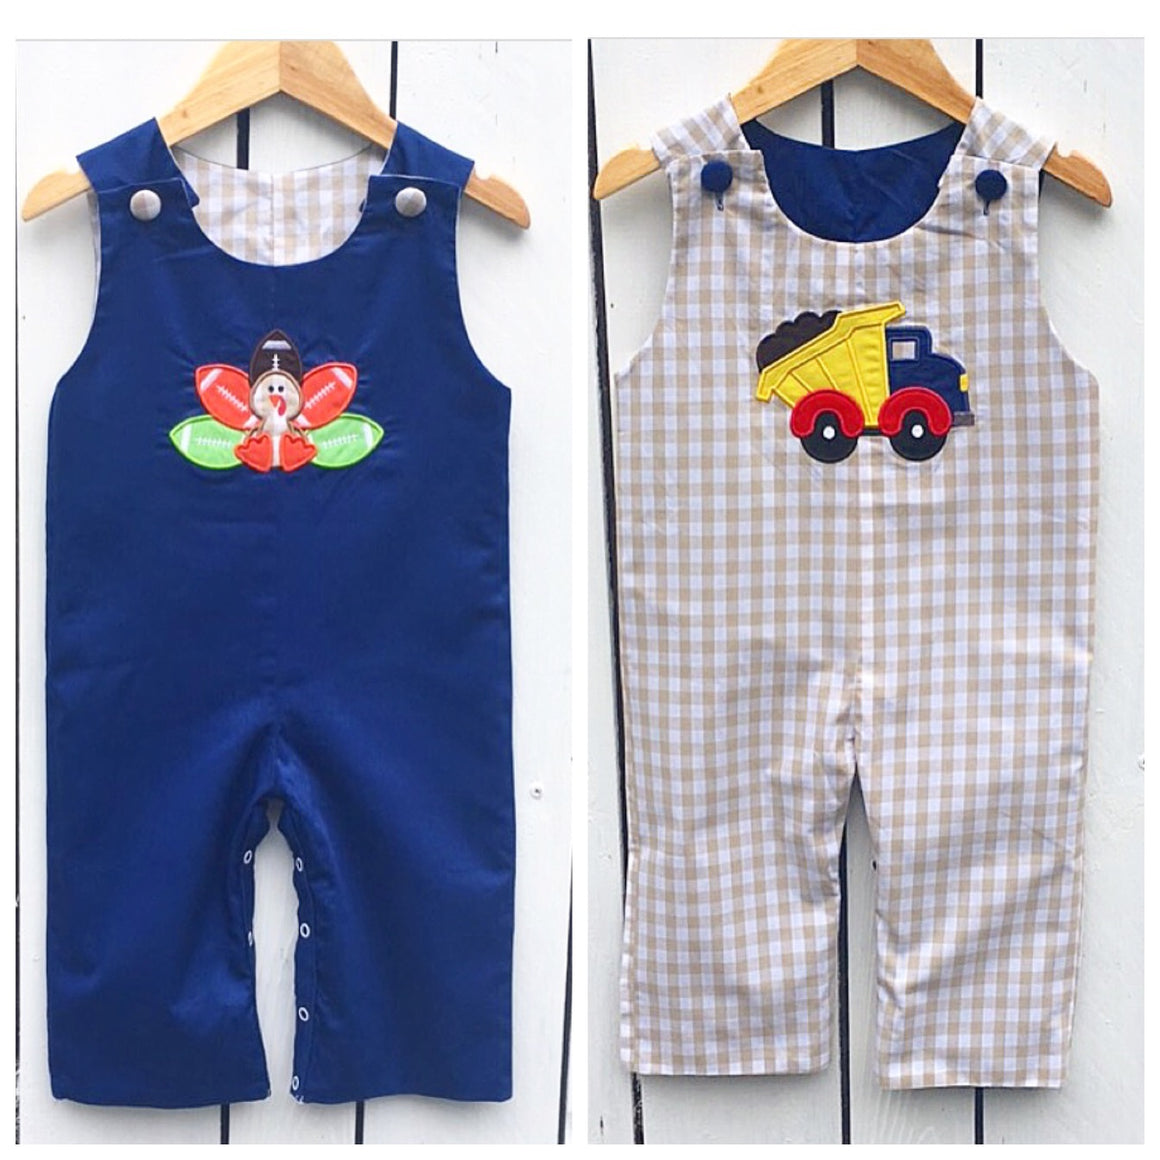 Reversible Longall Turkey Dump Truck Applique Baby Toddler Boys